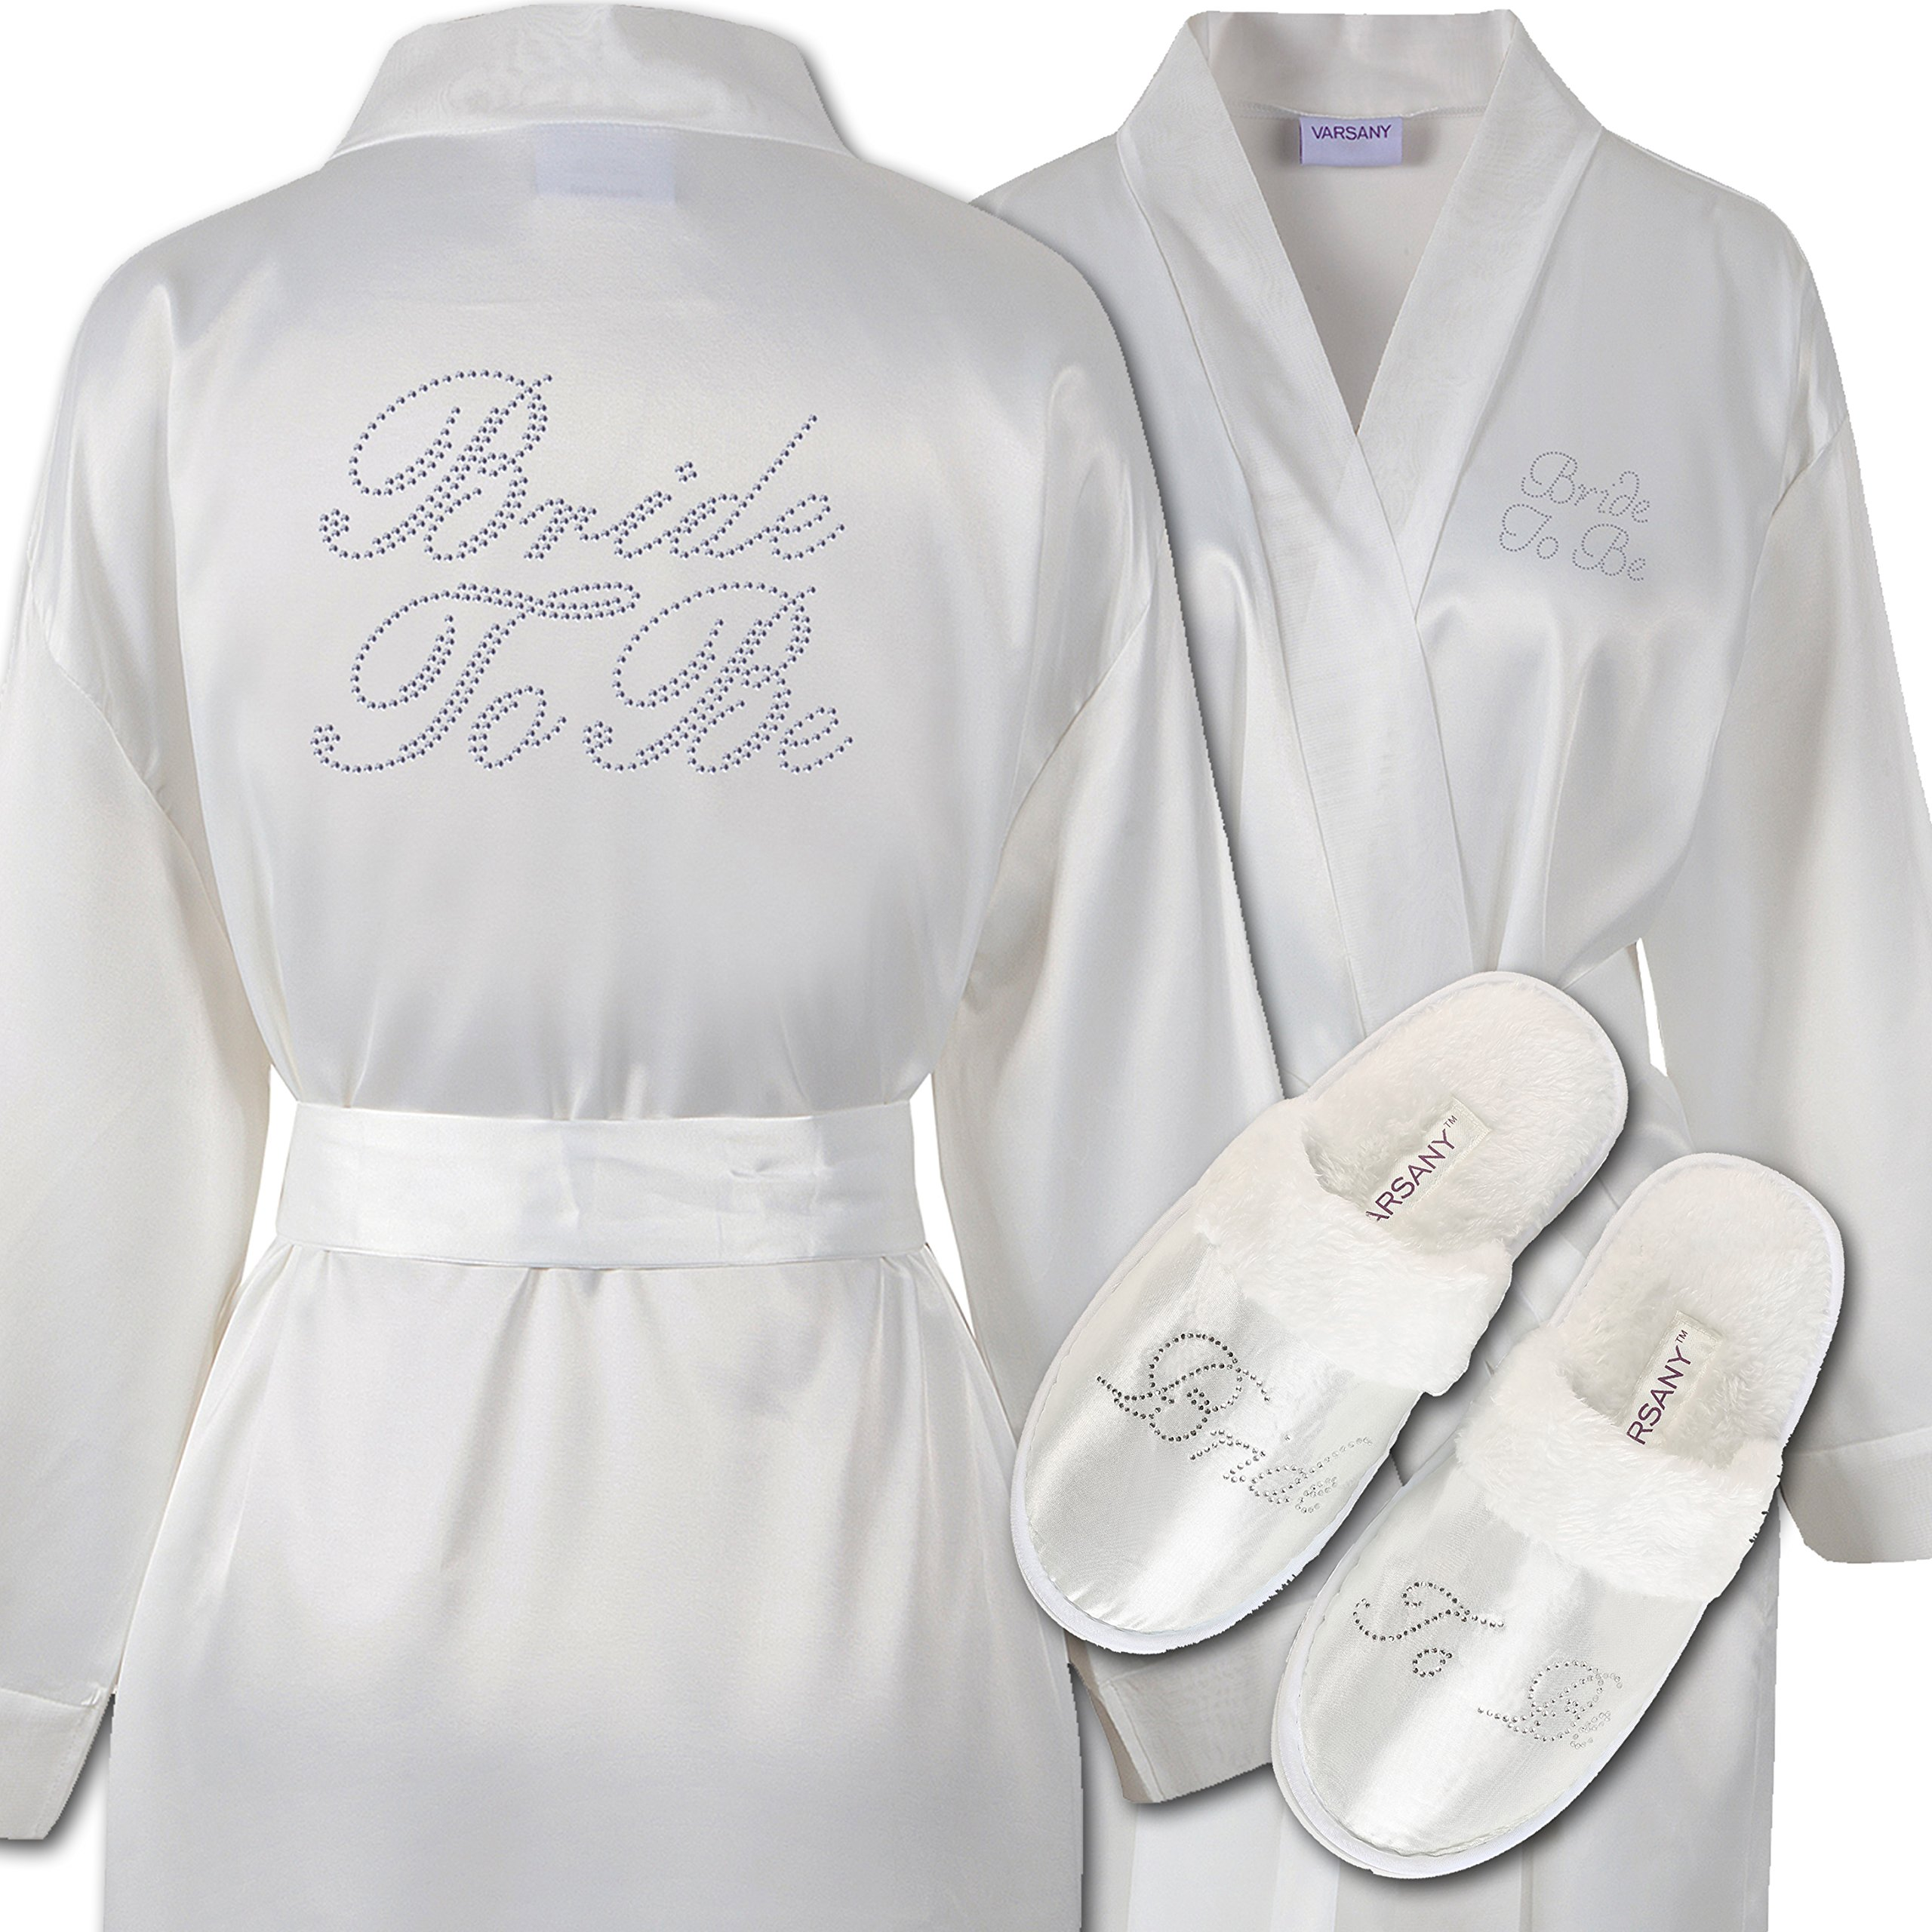 Dressing Gown and Slippers Set: Amazon.co.uk